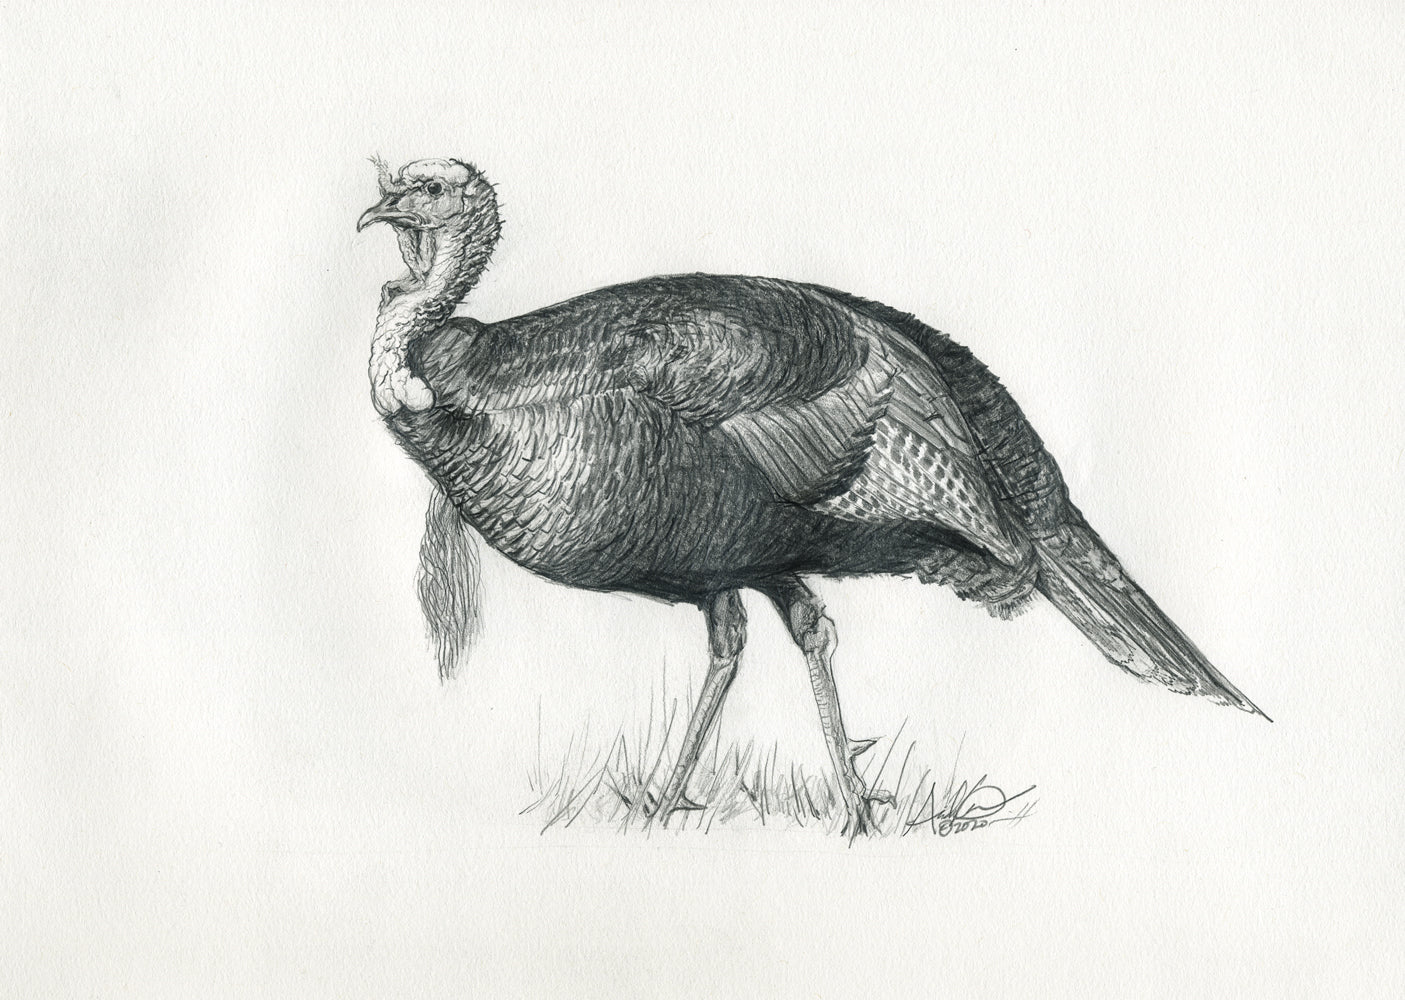 Original Turkey Illustration in Pencil, 8x10""